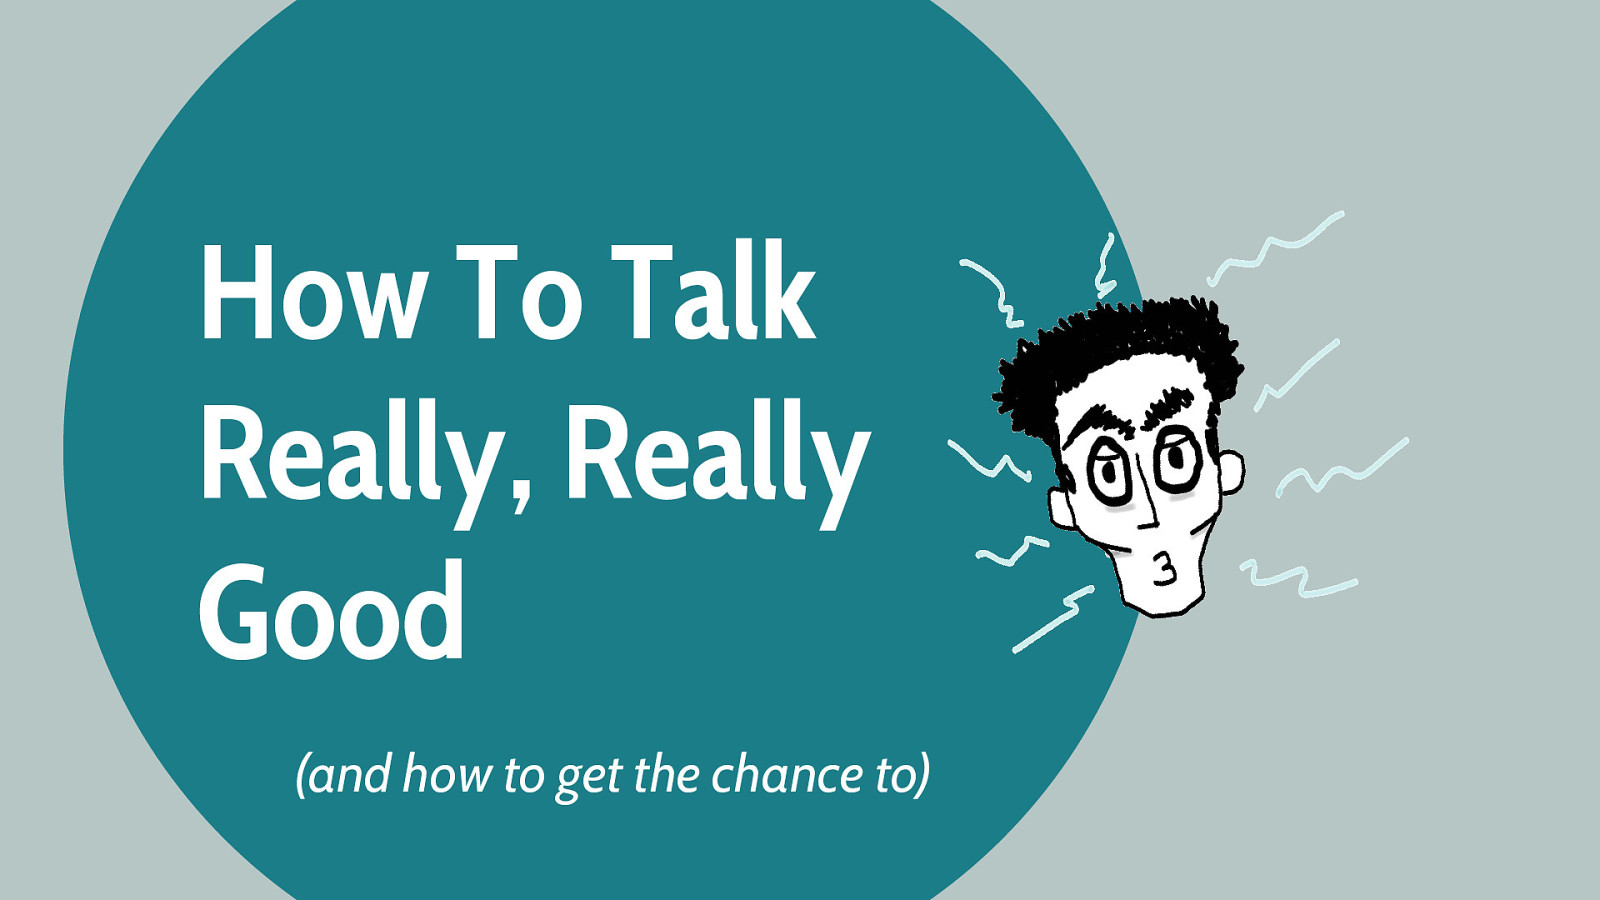 How To Talk Really, Really Good